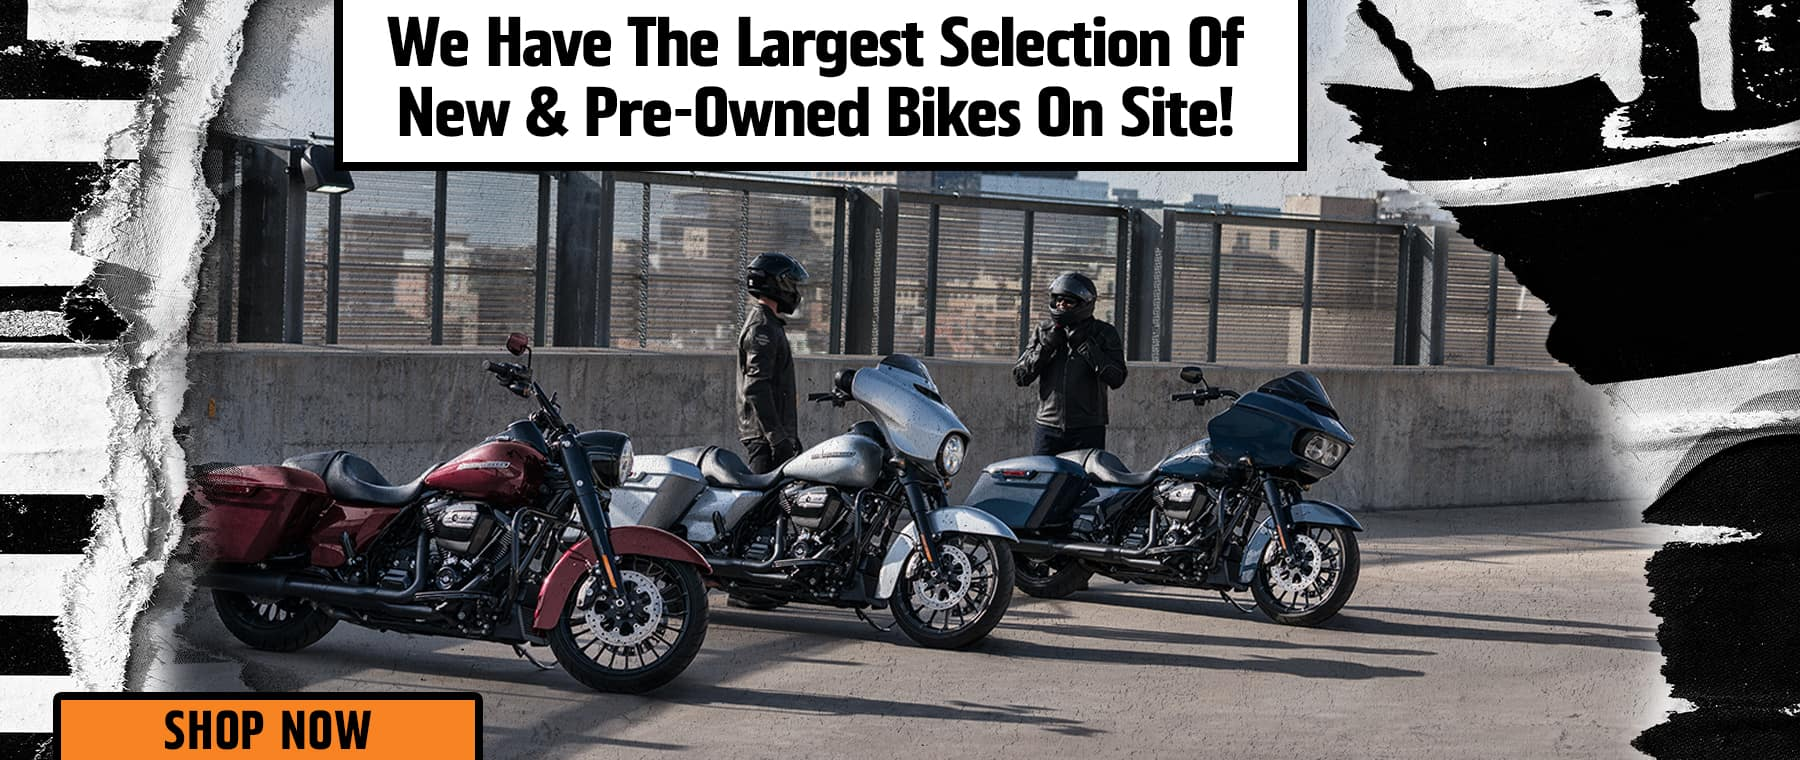 We Have the Largest Selection of New & Pre-Owned Bikes on Site!